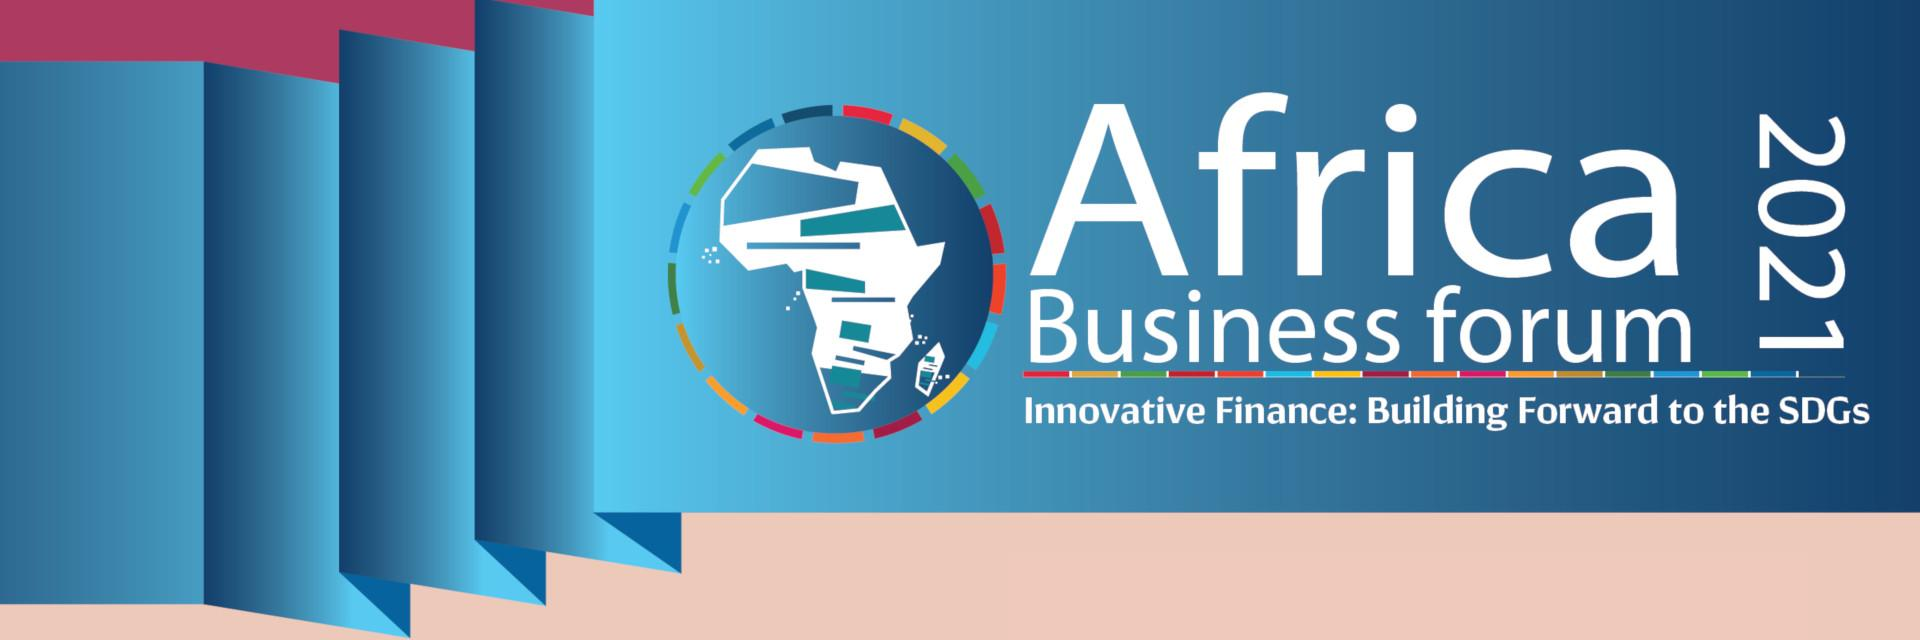 4th Africa Business Forum 2021